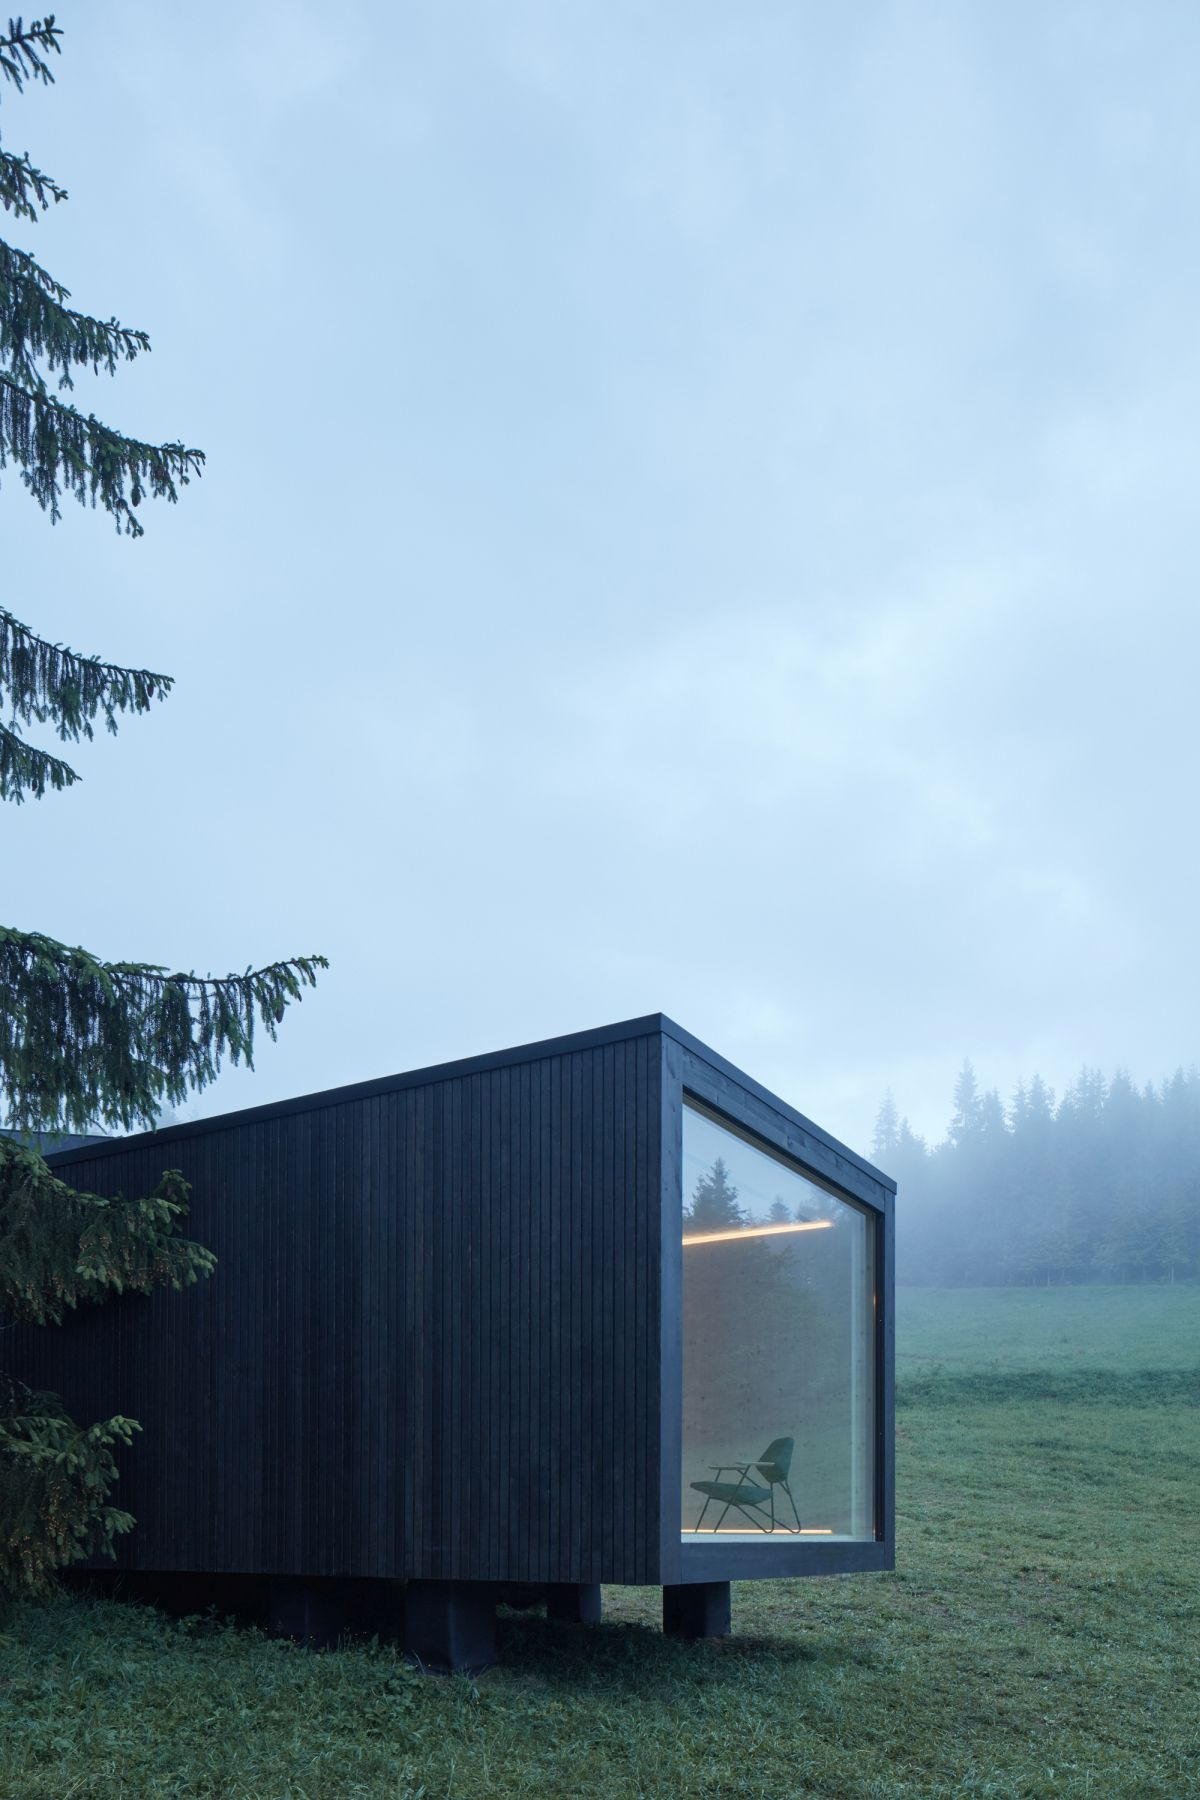 Thanks to its versatile and adaptable design, the Ark Shelter can be placed in lots of different environments